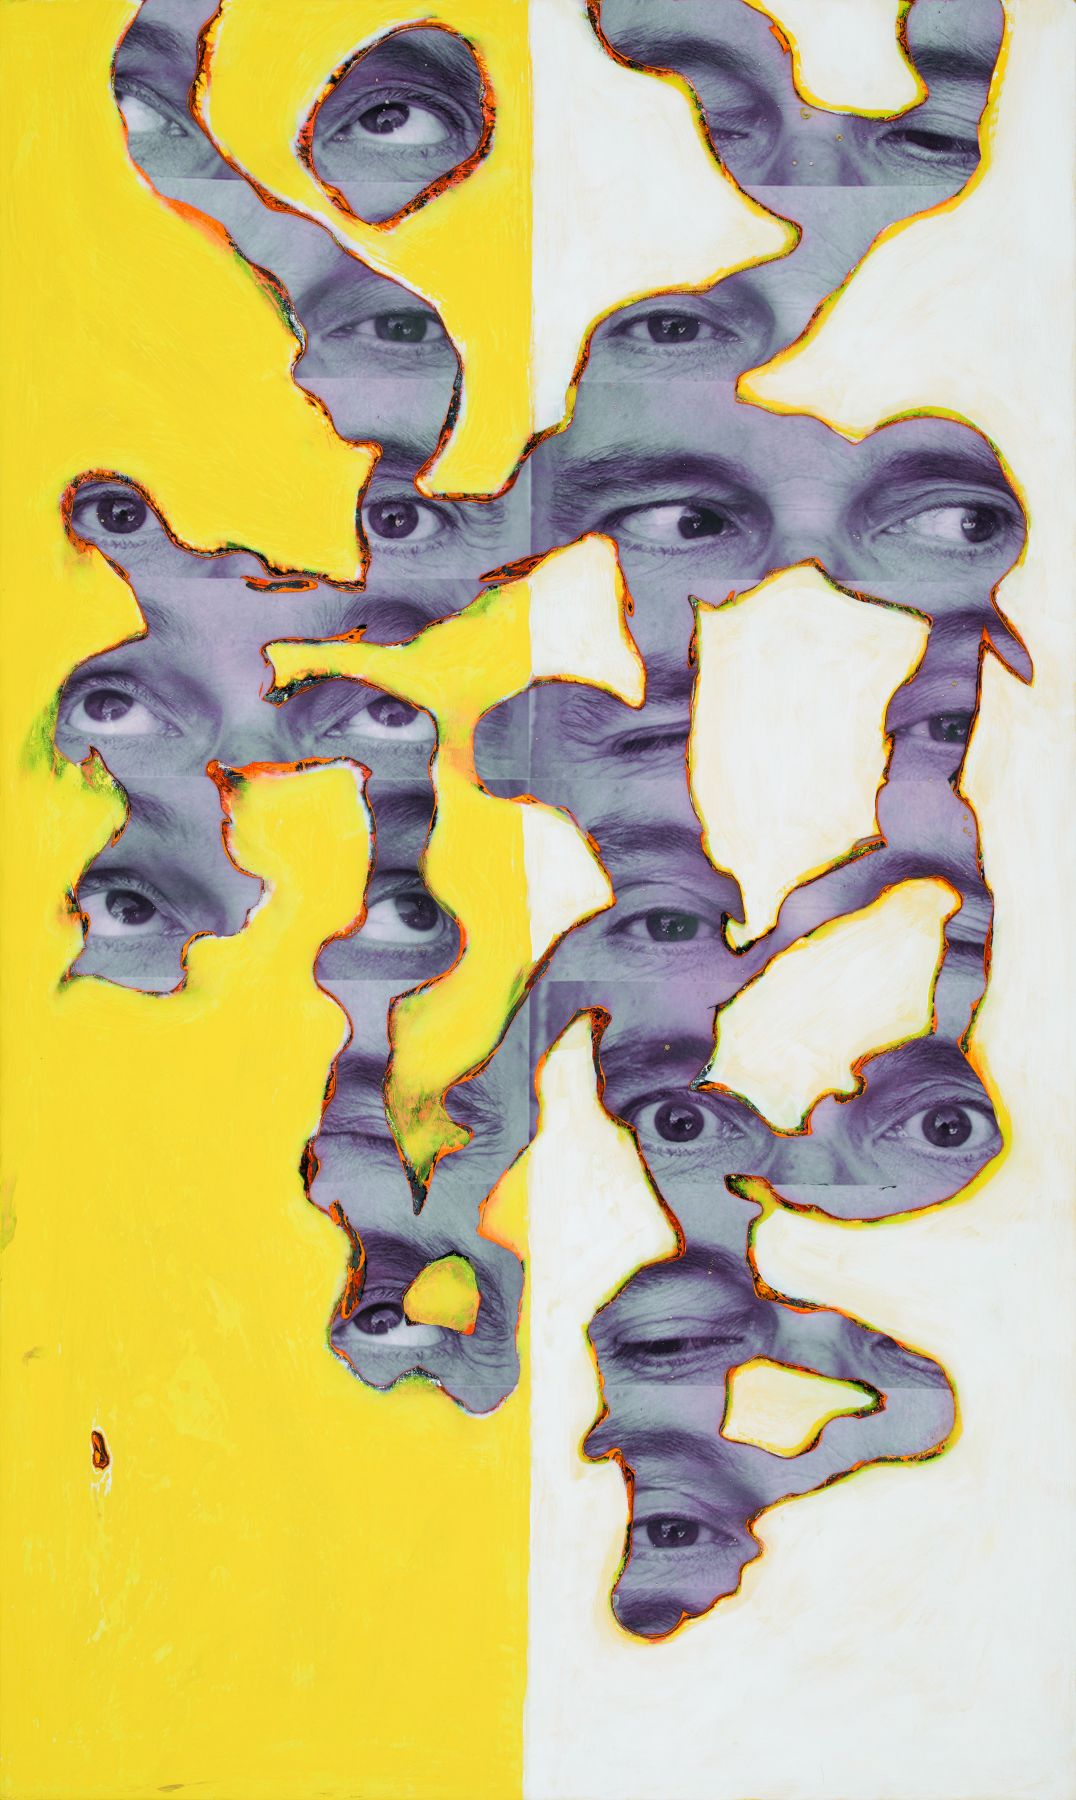 Randy Shull  Yellow Gaze, 2019  inkjet, acrylic on panel  53h x 32w in